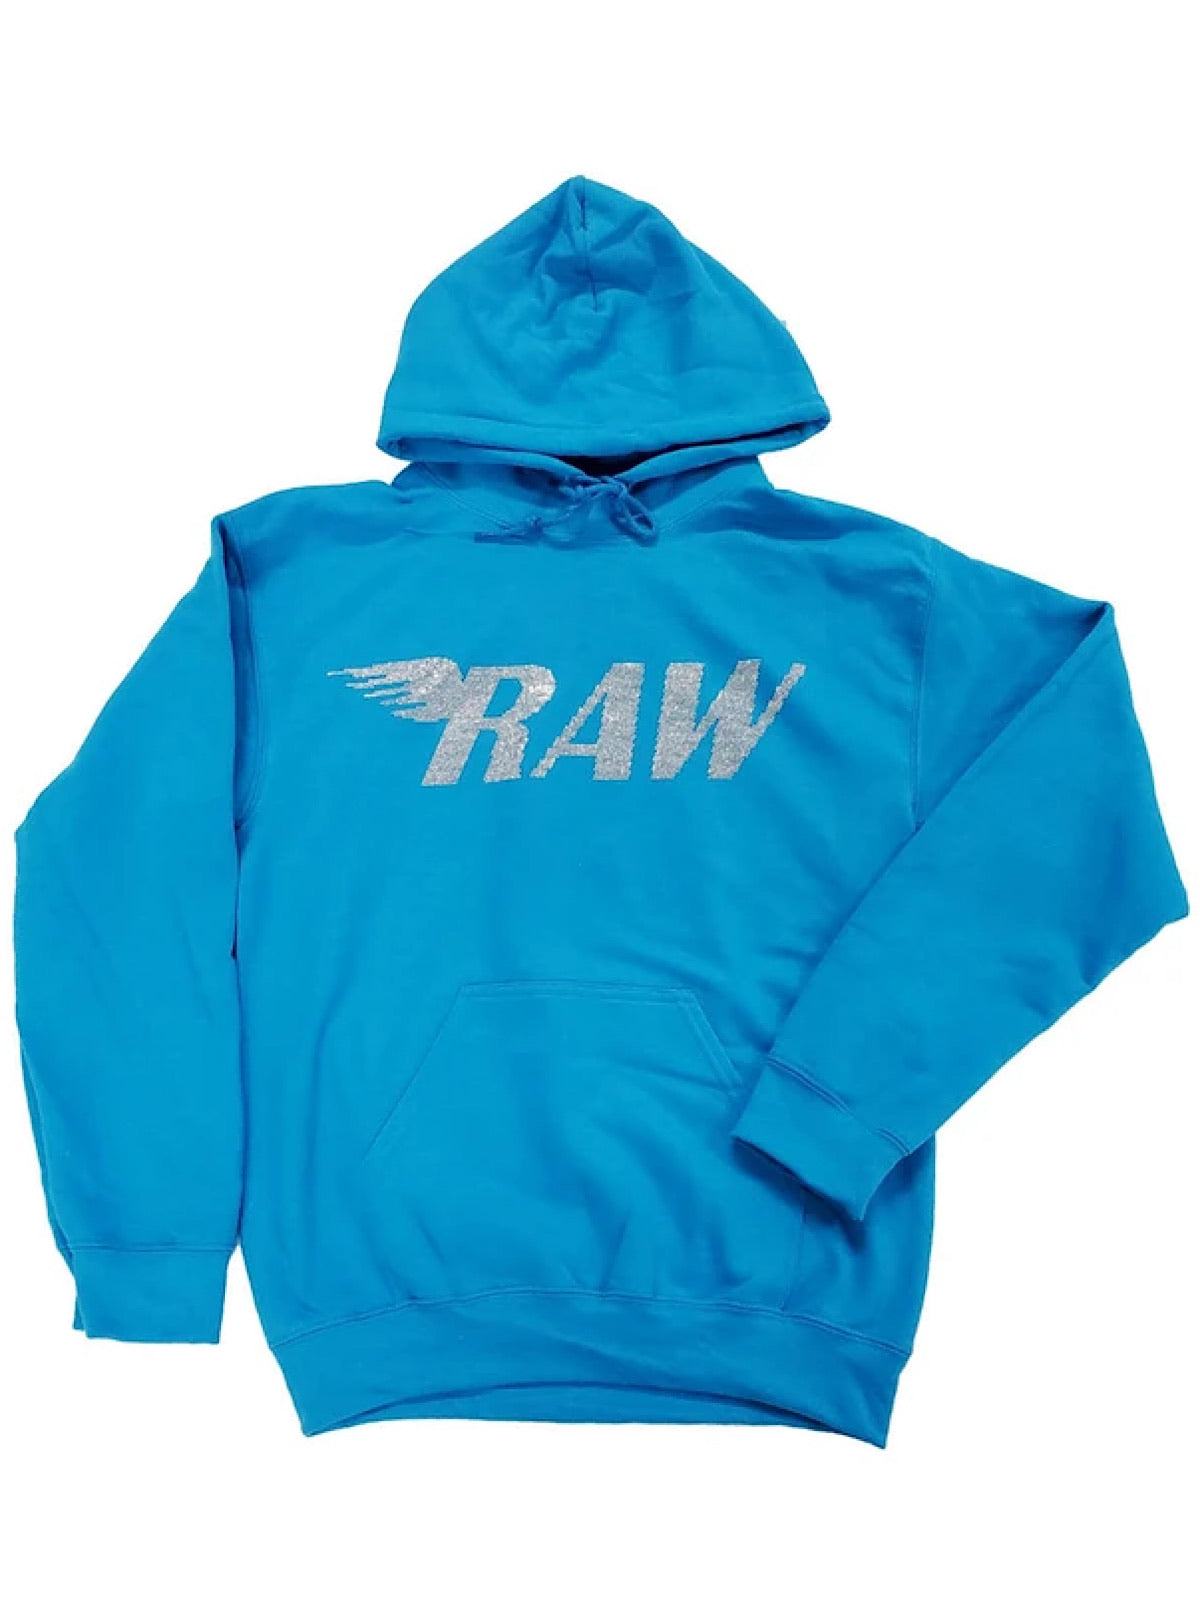 Rawyalty Hoodie - Raw Stones - Sky Blue And Silver